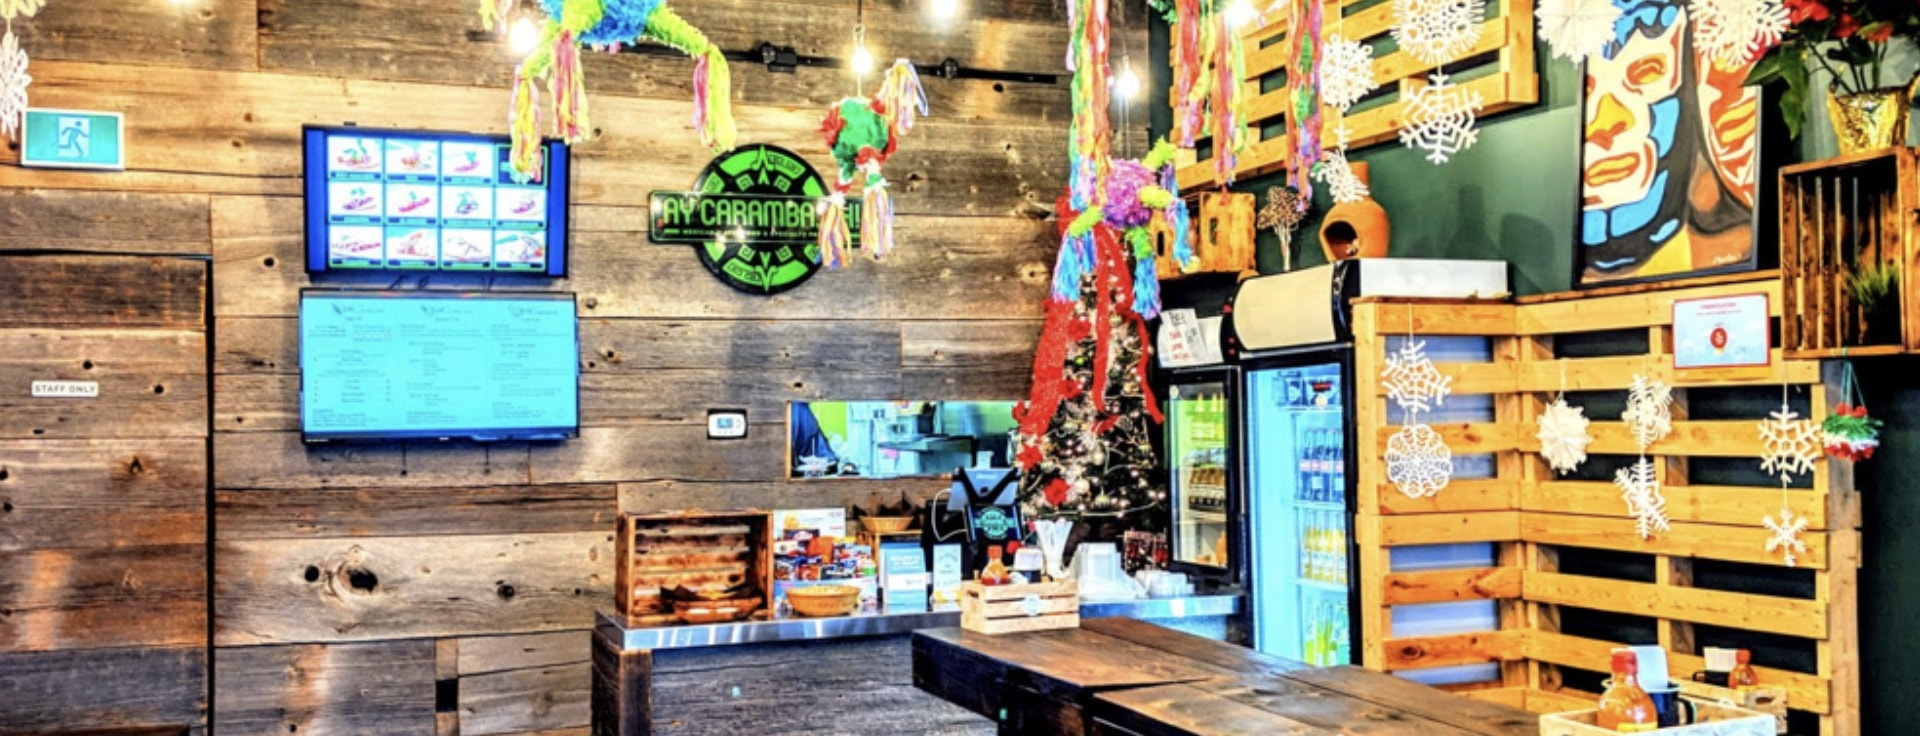 inside view of the store